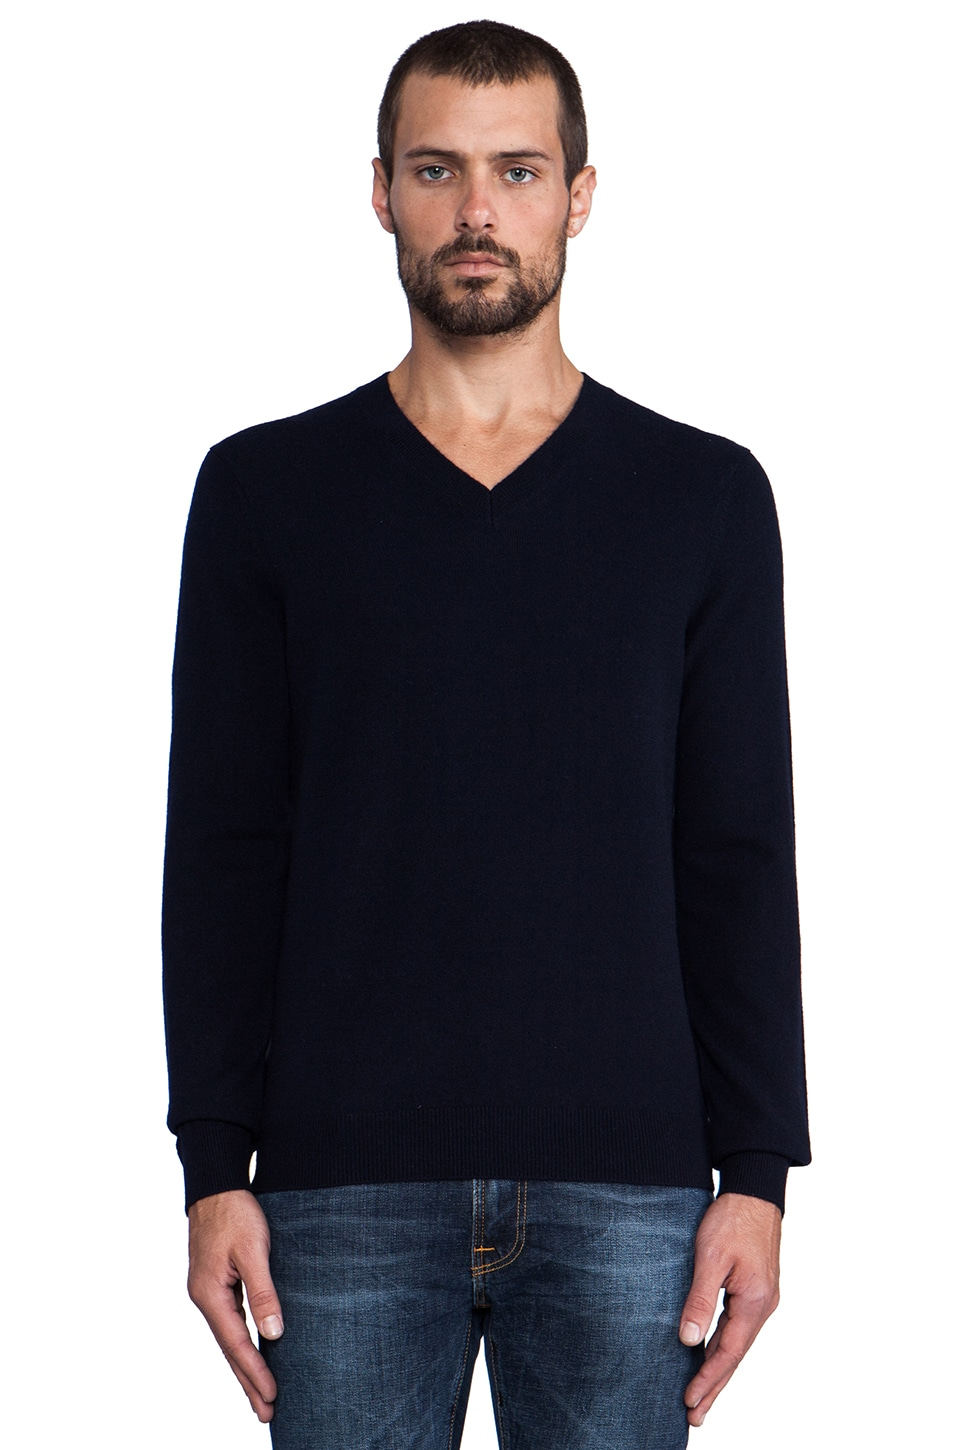 Vince 100% Cashmere V-Neck Sweater in Coastal